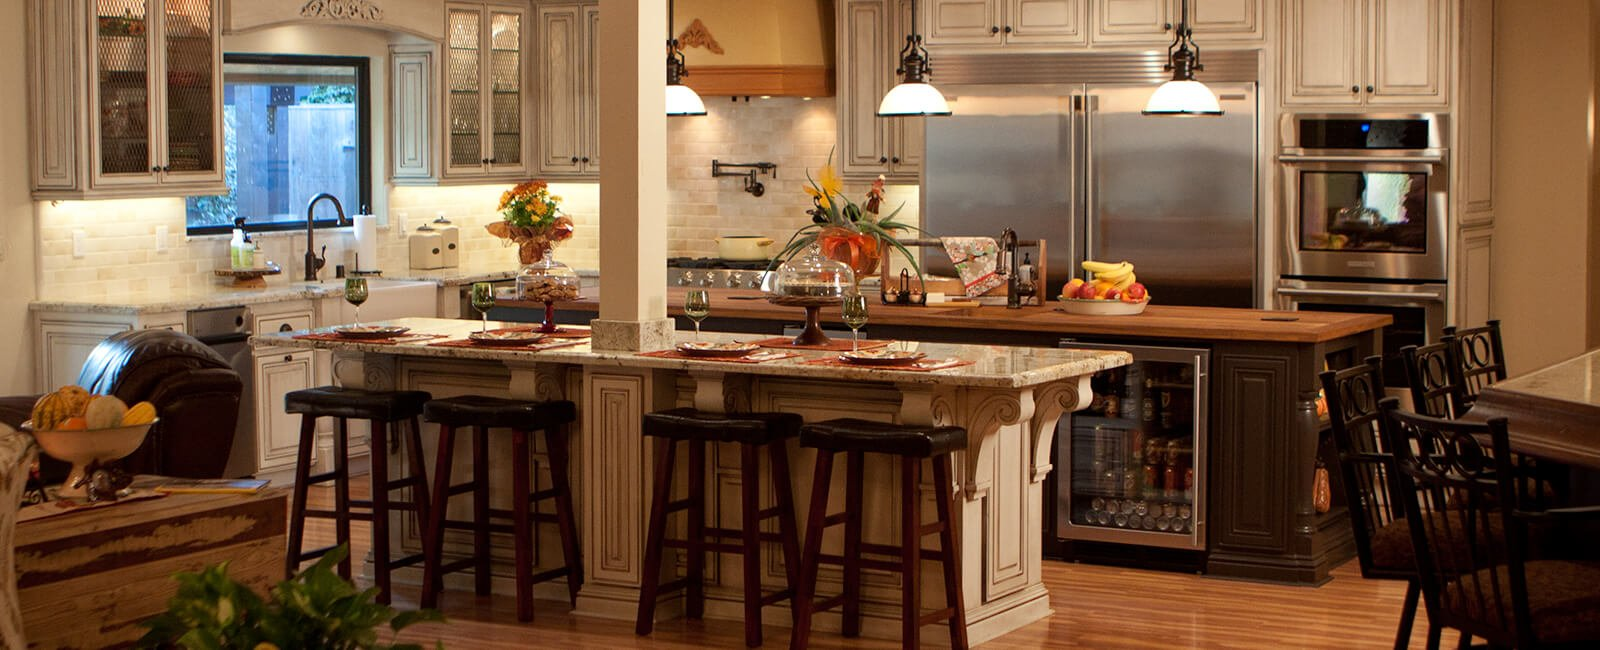 How Much Does a Kitchen Remodel Cost in Fresno, California?